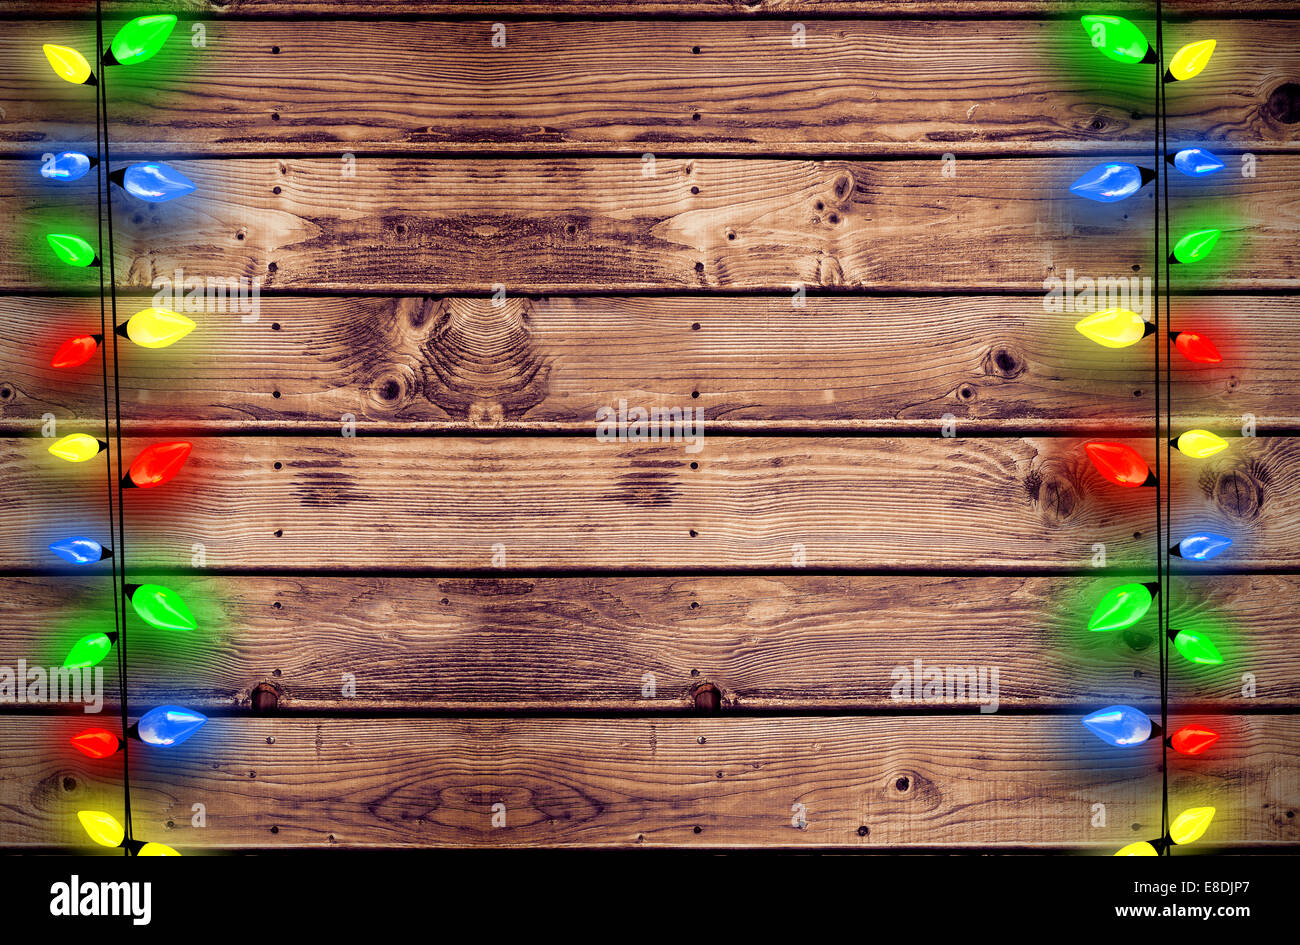 Composite image of decorative lights hanging in a shape Stock Photo